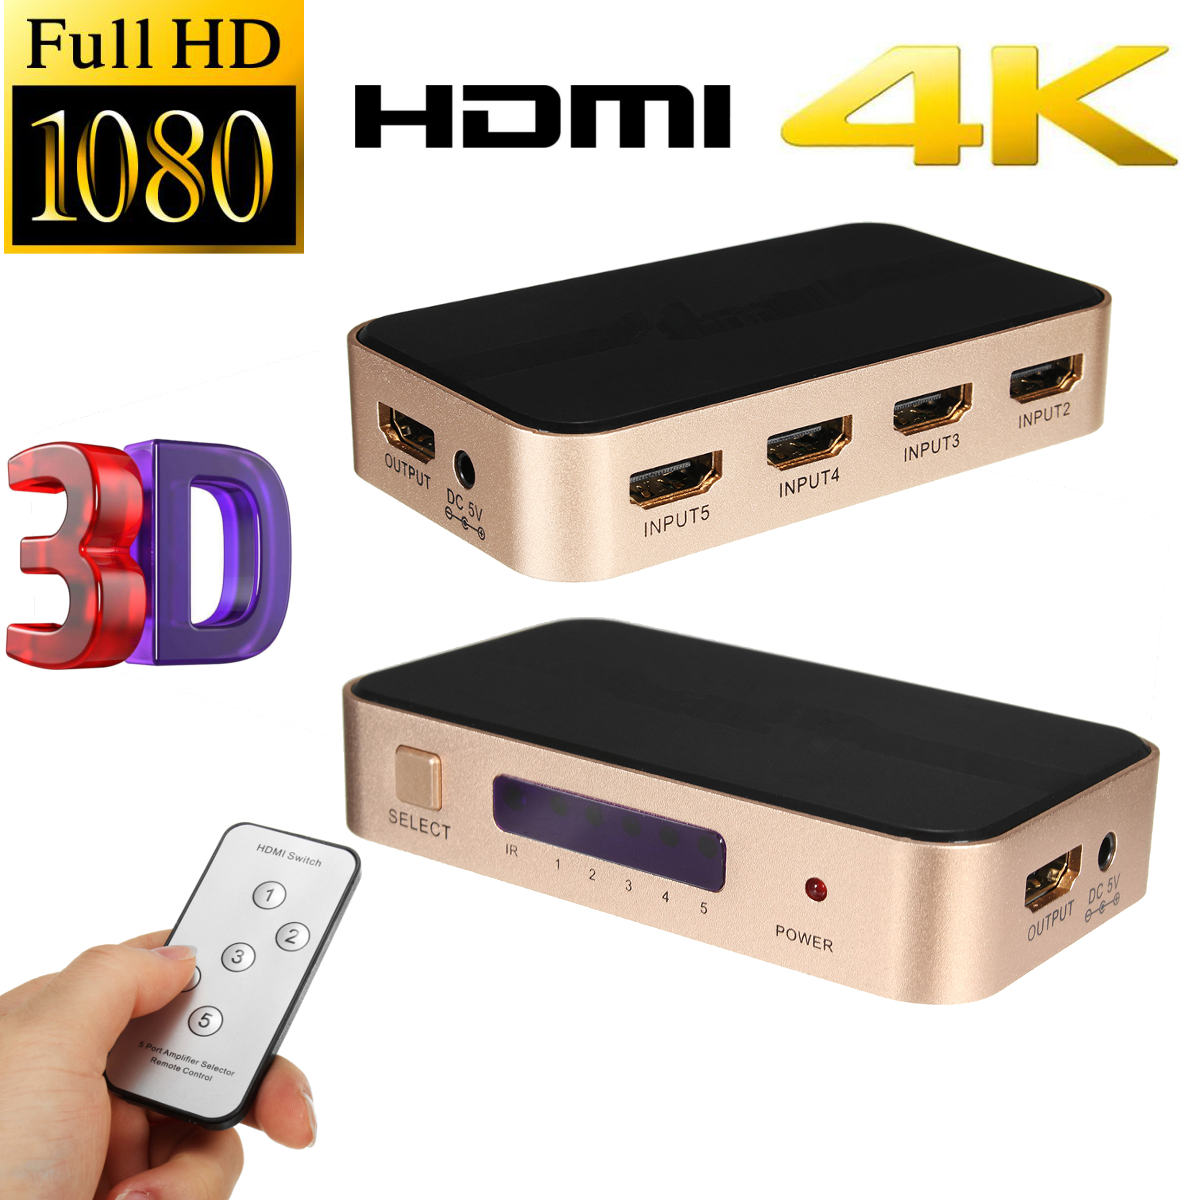 HDMI Splitter Switch 5 input 1 output HDMI Switcher 5X1 for XBOX 360 PS4/3 Smart Android HDTV 4K*2K 5 Port HDMI Adapter aixxco hdmi splitter audio decoder 4k